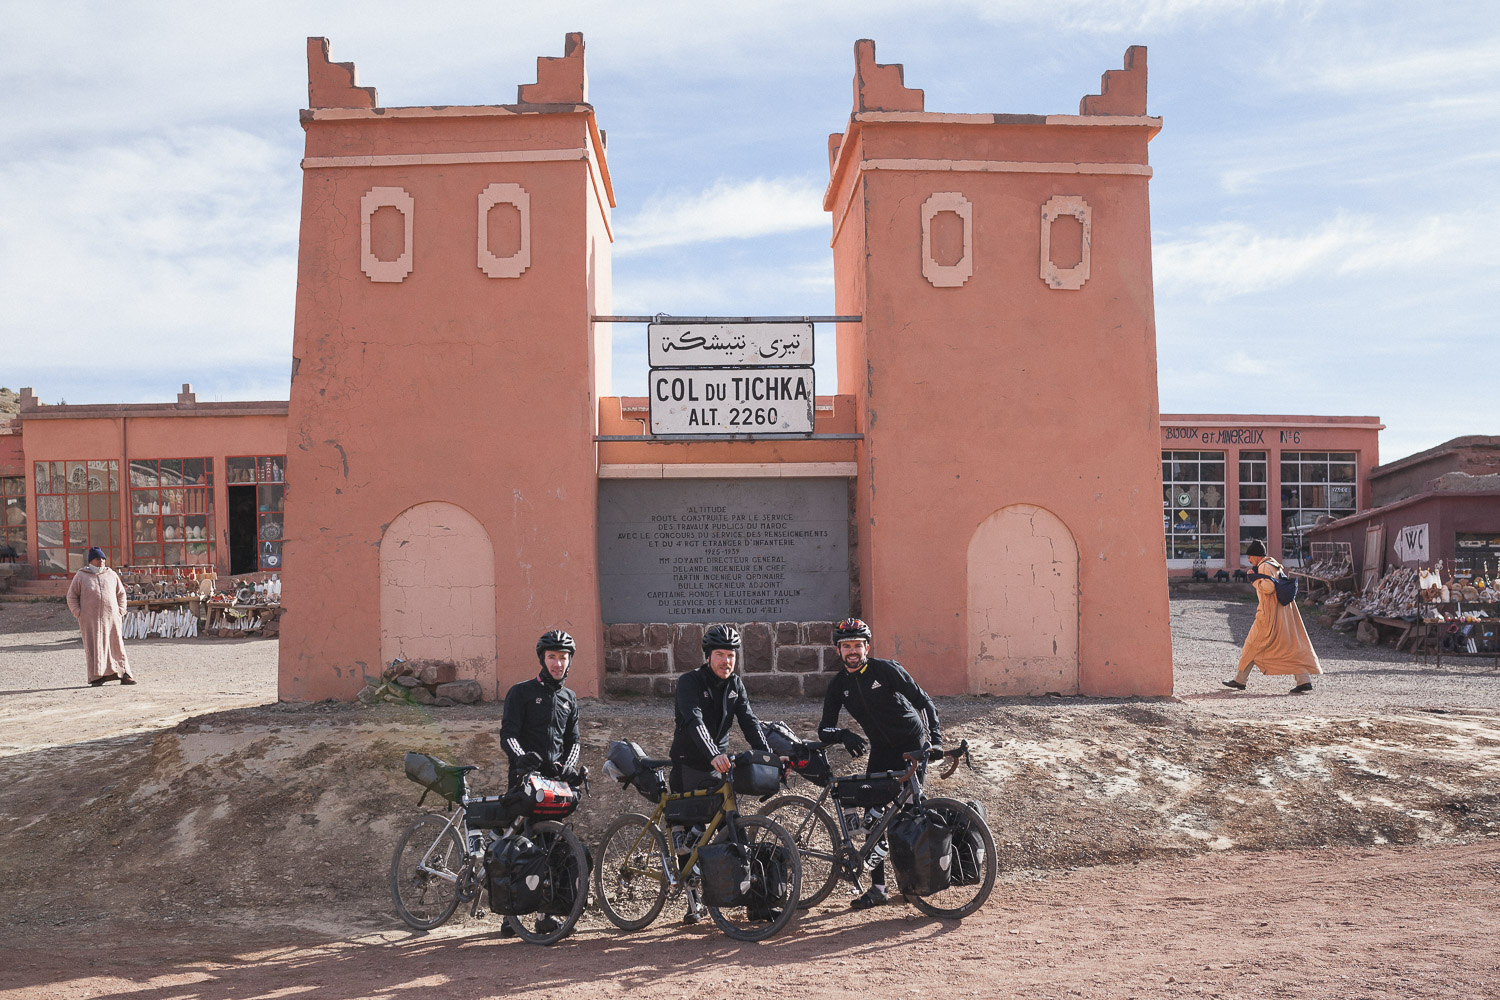 8bar bikes adventures morocco gravel 20151211 0024 bearbeitet - 8bar Adventures - Morocco - High Atlas - Part 2/2